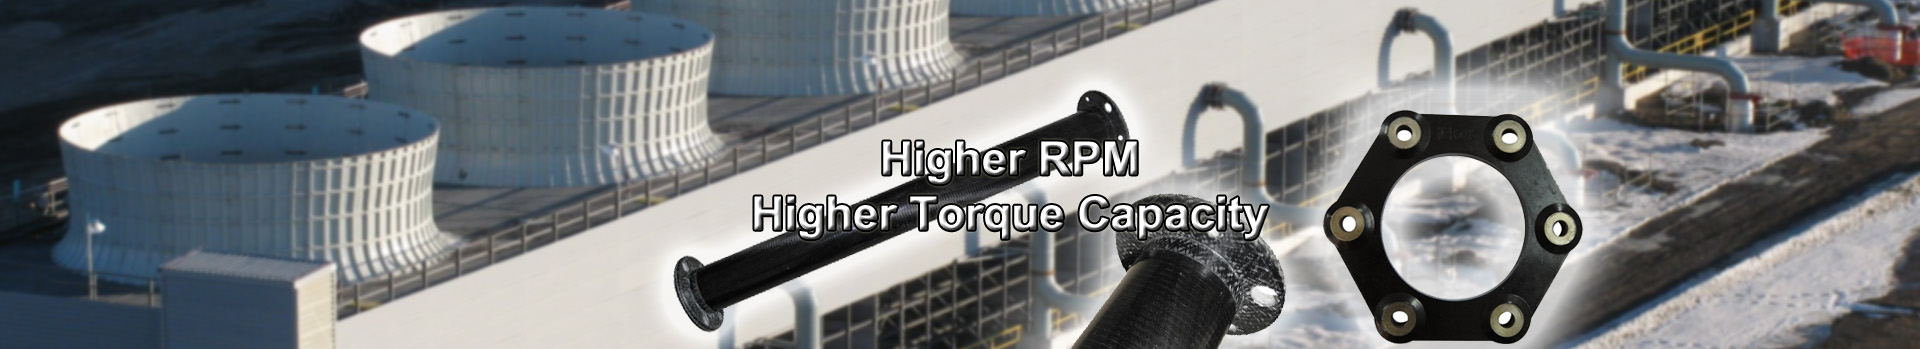 Carbonfiber Driveshaft — Higher RPM,Higher Torque Capacity